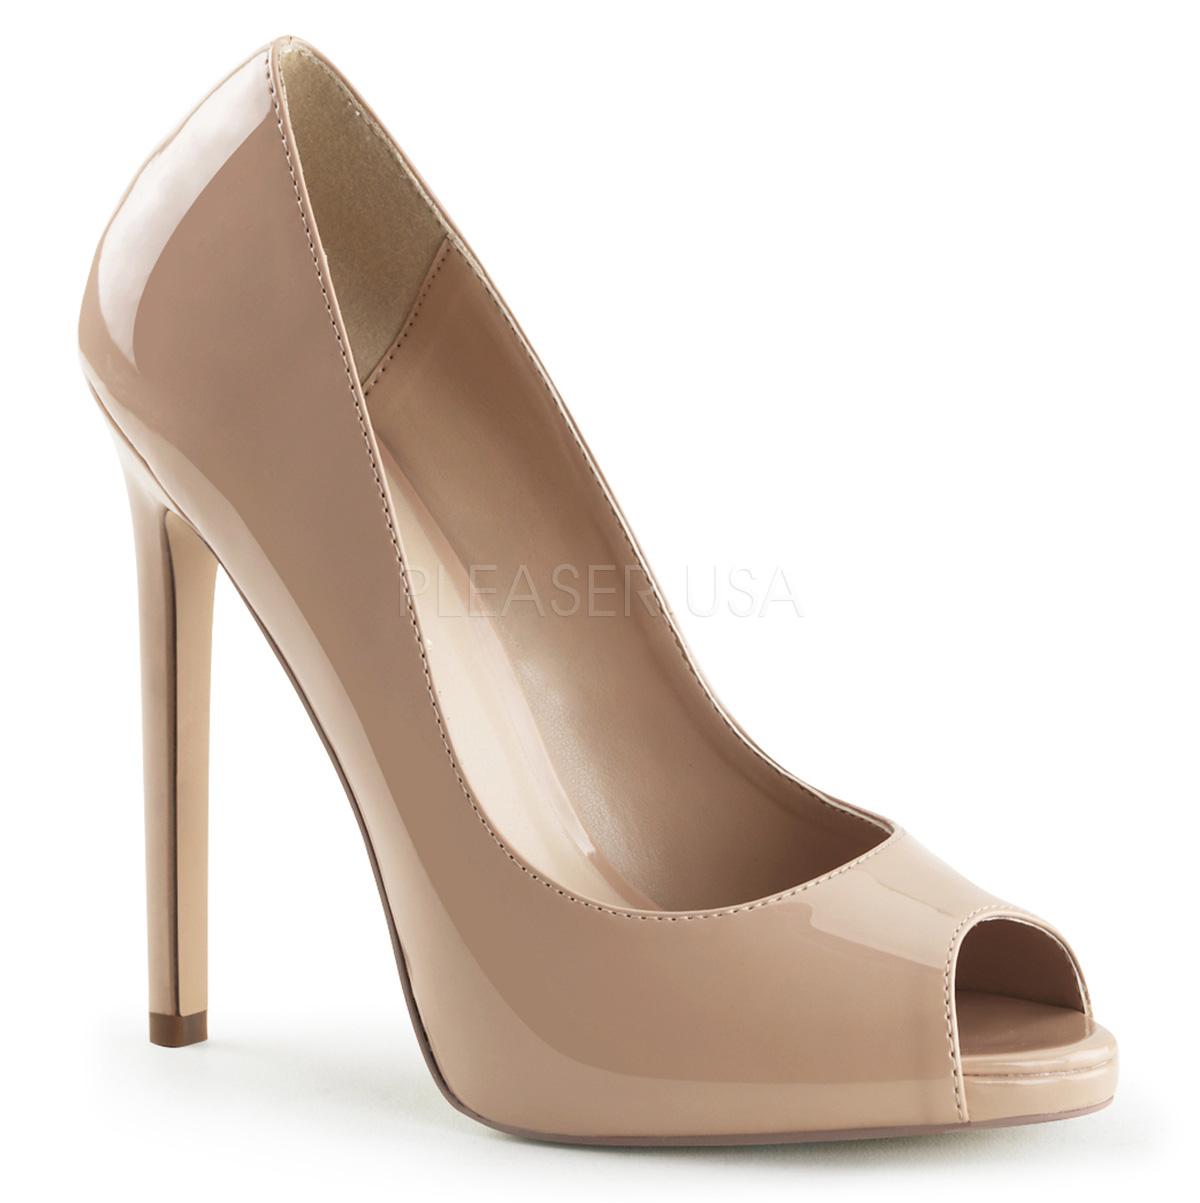 pleaser sexy 42 stiletto high heel peep toe pump